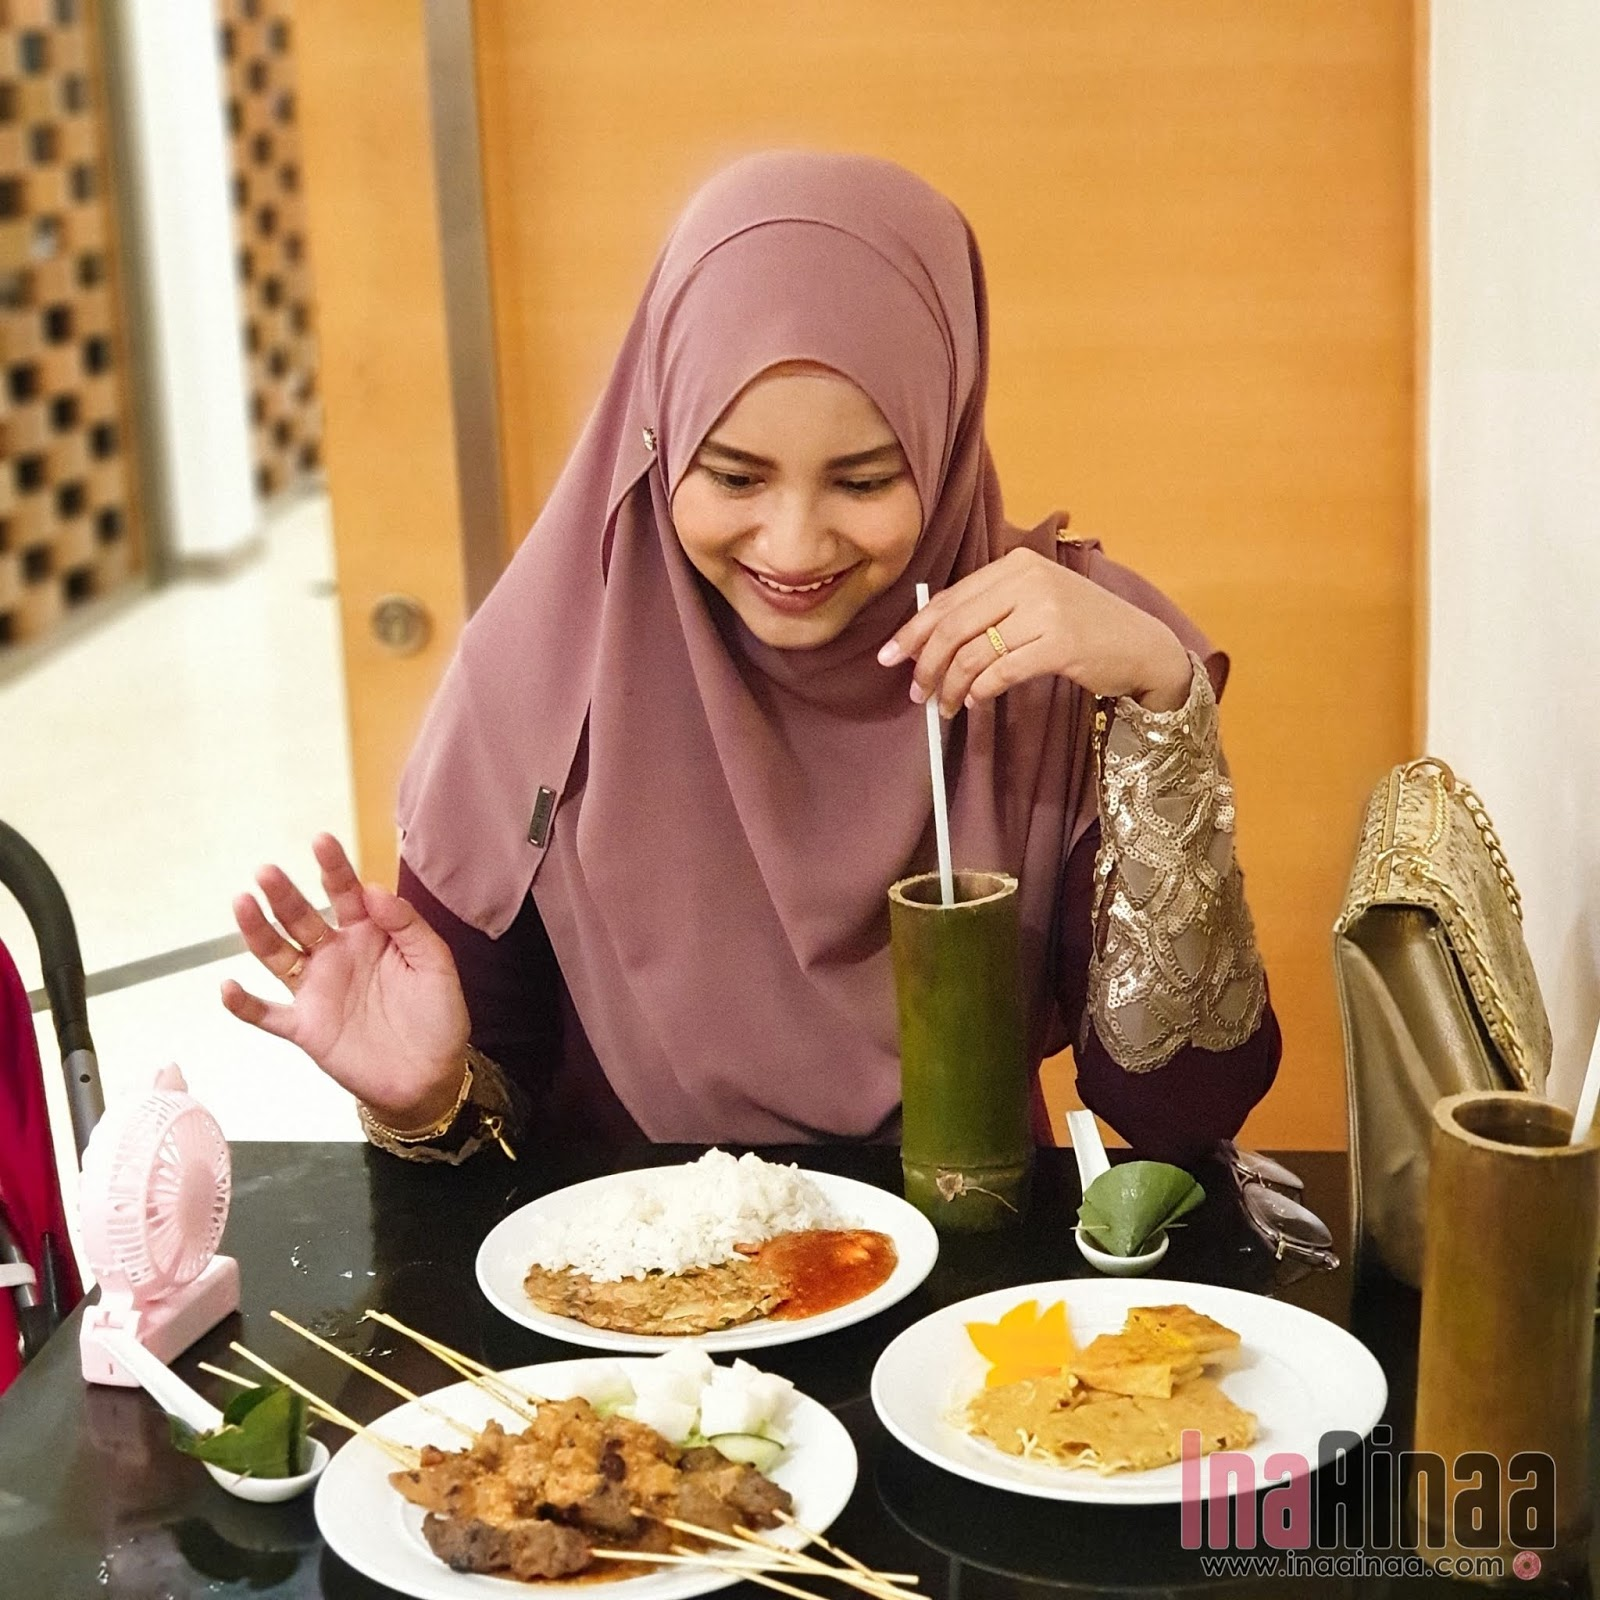 THE EVERLY HOTEL PUTRAJAYA - Hak Milik Ina Ainaa